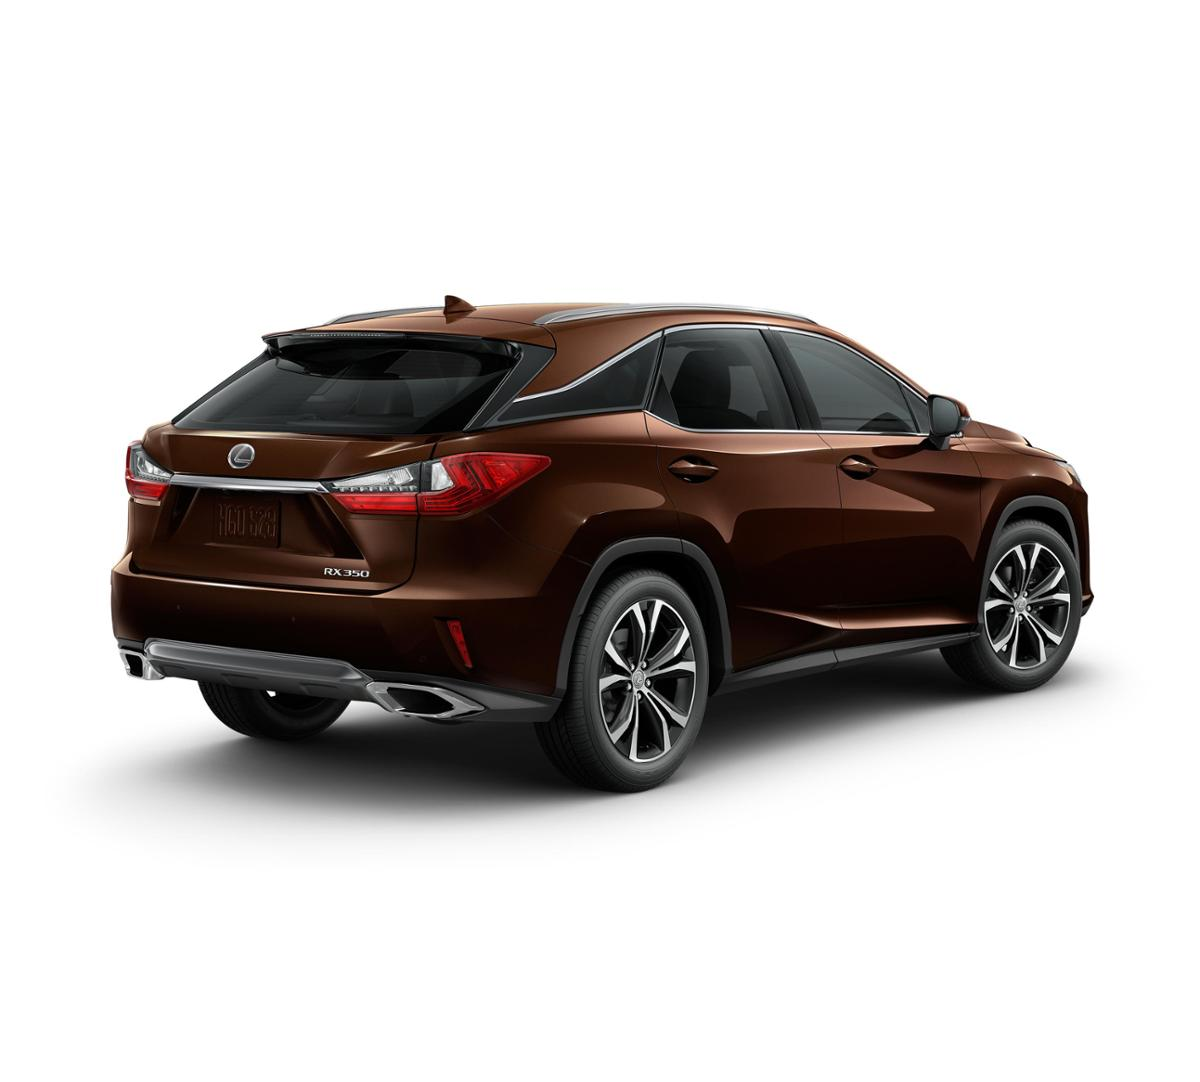 Lexus Rx 350 Lease: New 2018 Lexus RX 350 (Autumn Shimmer) For Sale In Houston